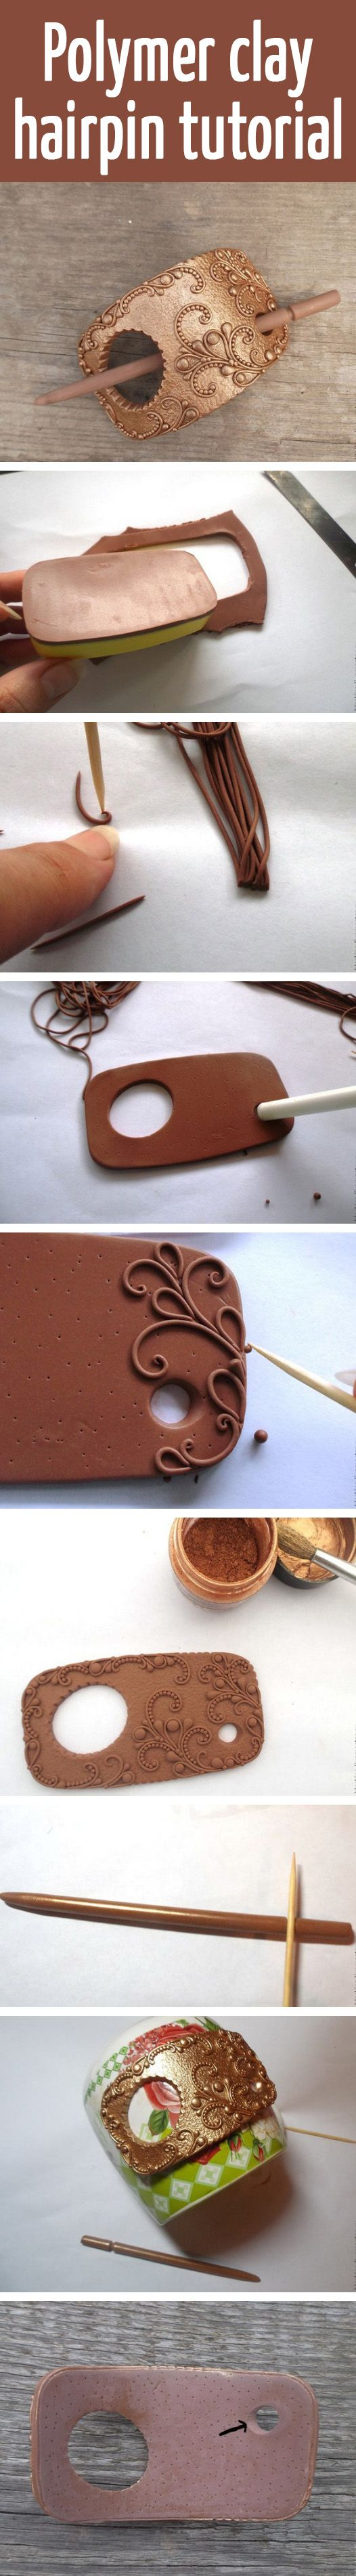 Polymer clay hairpin tutorial